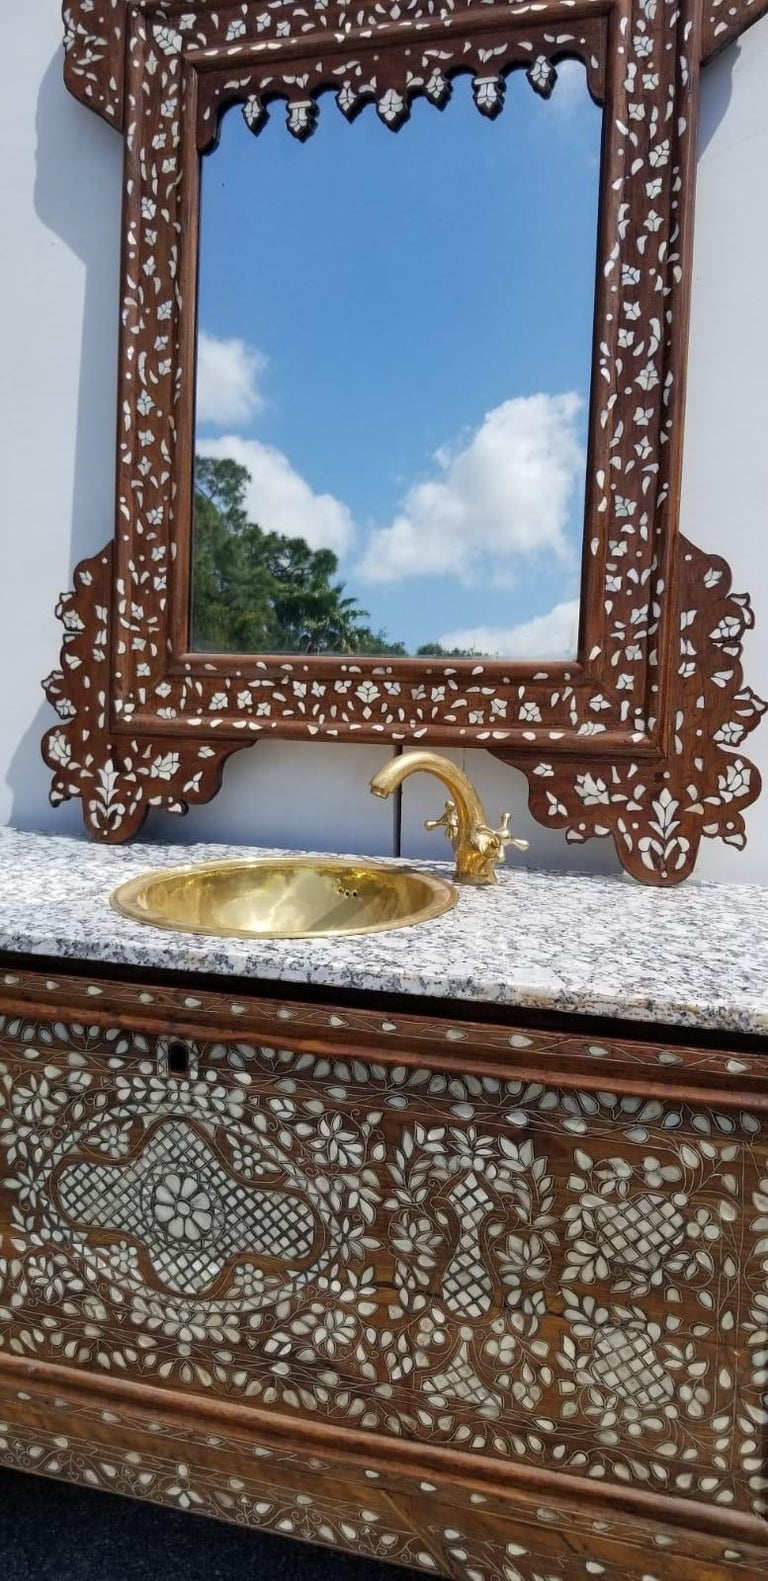 Beautiful 19th century Middle Eastern mother of pearl vanity and mirror. Old Syrian wedding chest Re- purposed into a sink vanity and mirror set. The chest is walnut and mother of pearl with a beautiful matching mother of pearl mirror. Measures: